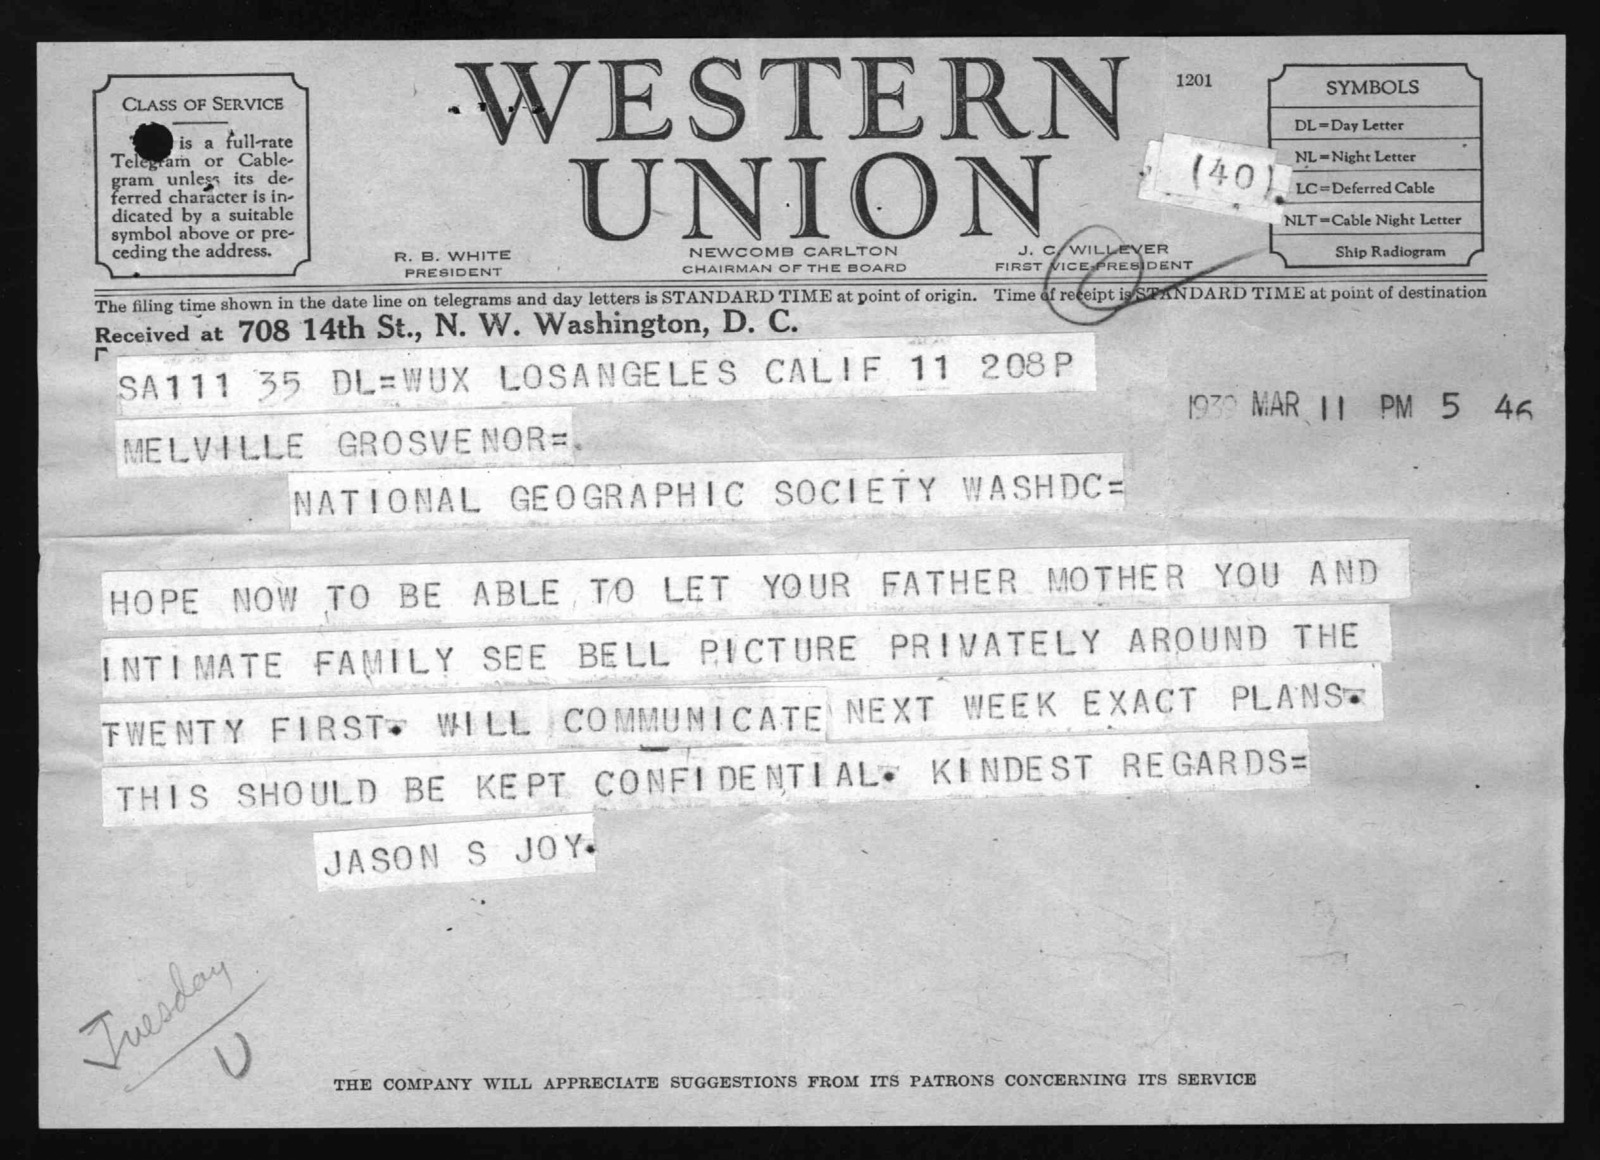 Telegrams, from March 11, 1939 to March 18, 1939